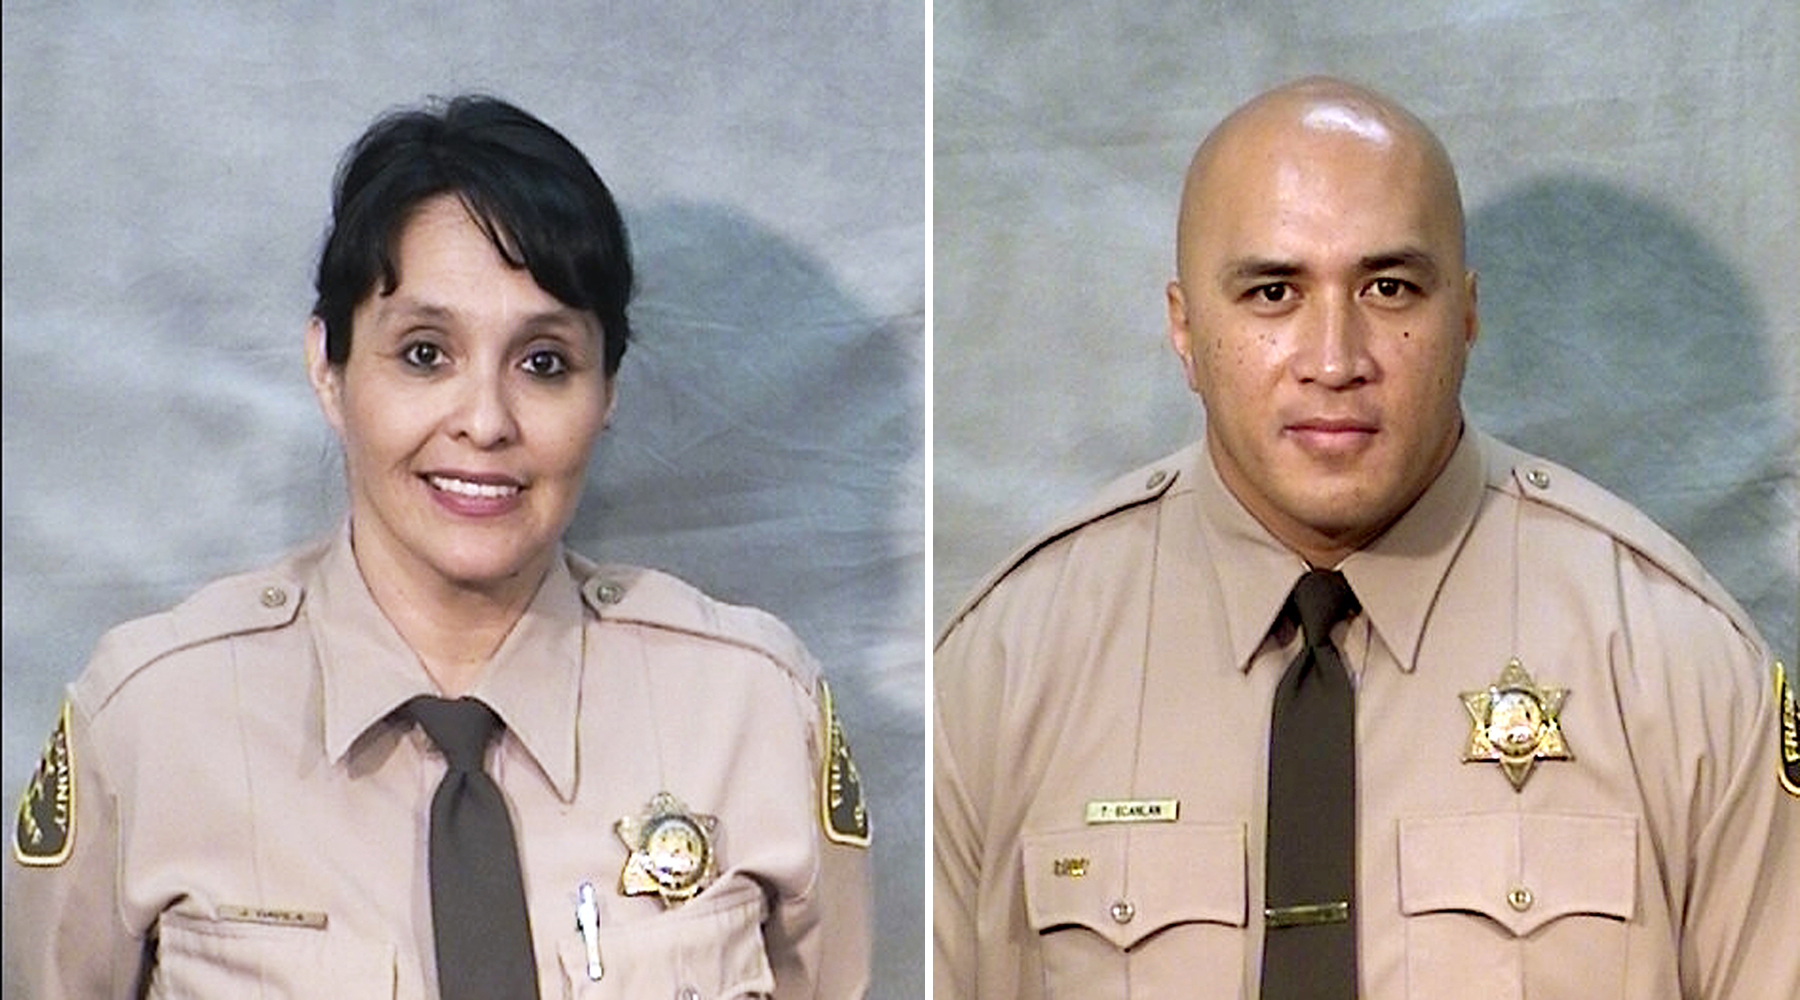 Fresno, California corrections officers